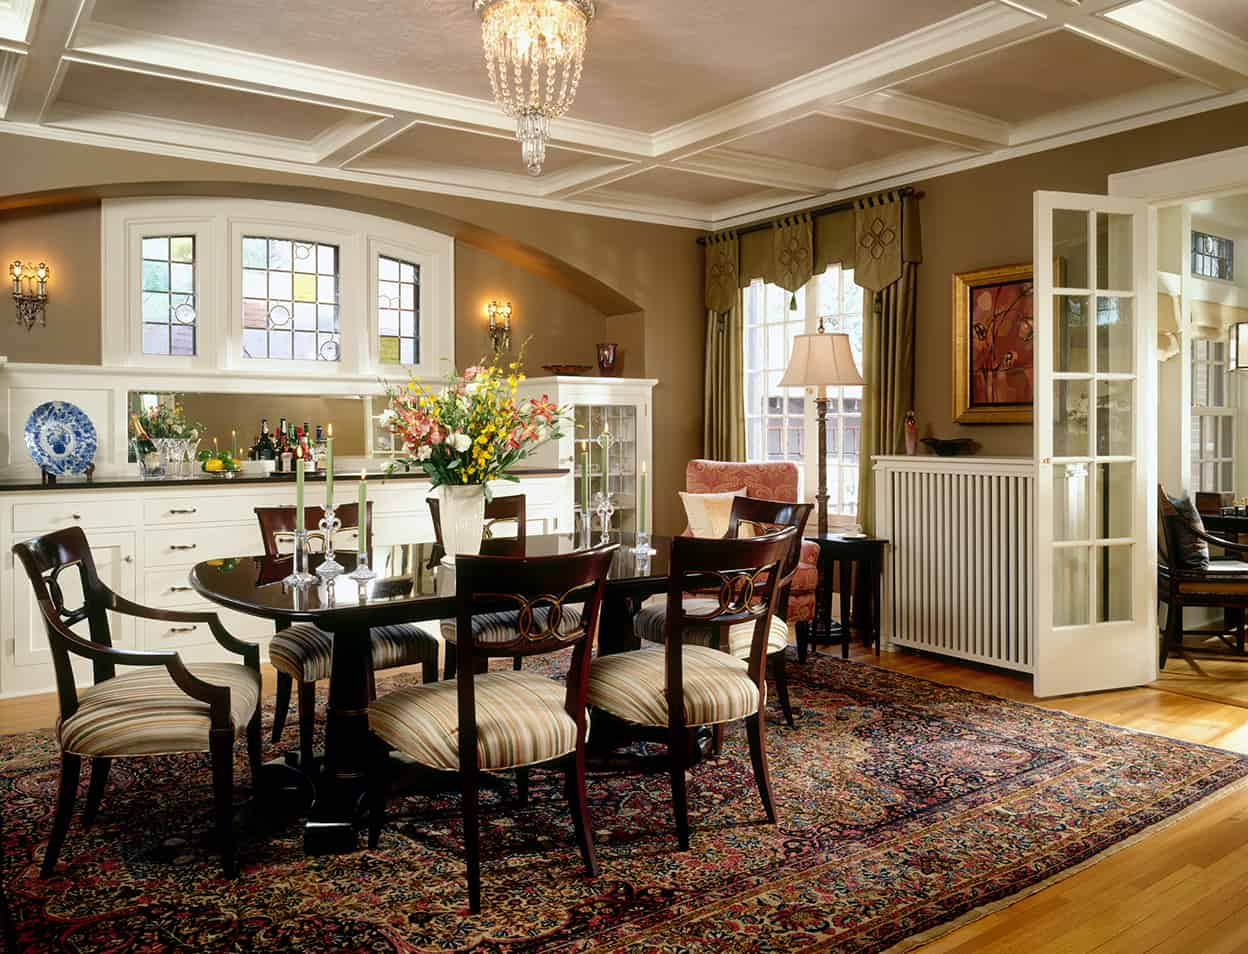 With it's coffered ceiling, elaborate built-in buffet with art glass, crystal sconces, and mirror all set into an arched niche, and elegant furniture, this dining room would enhance any meal.